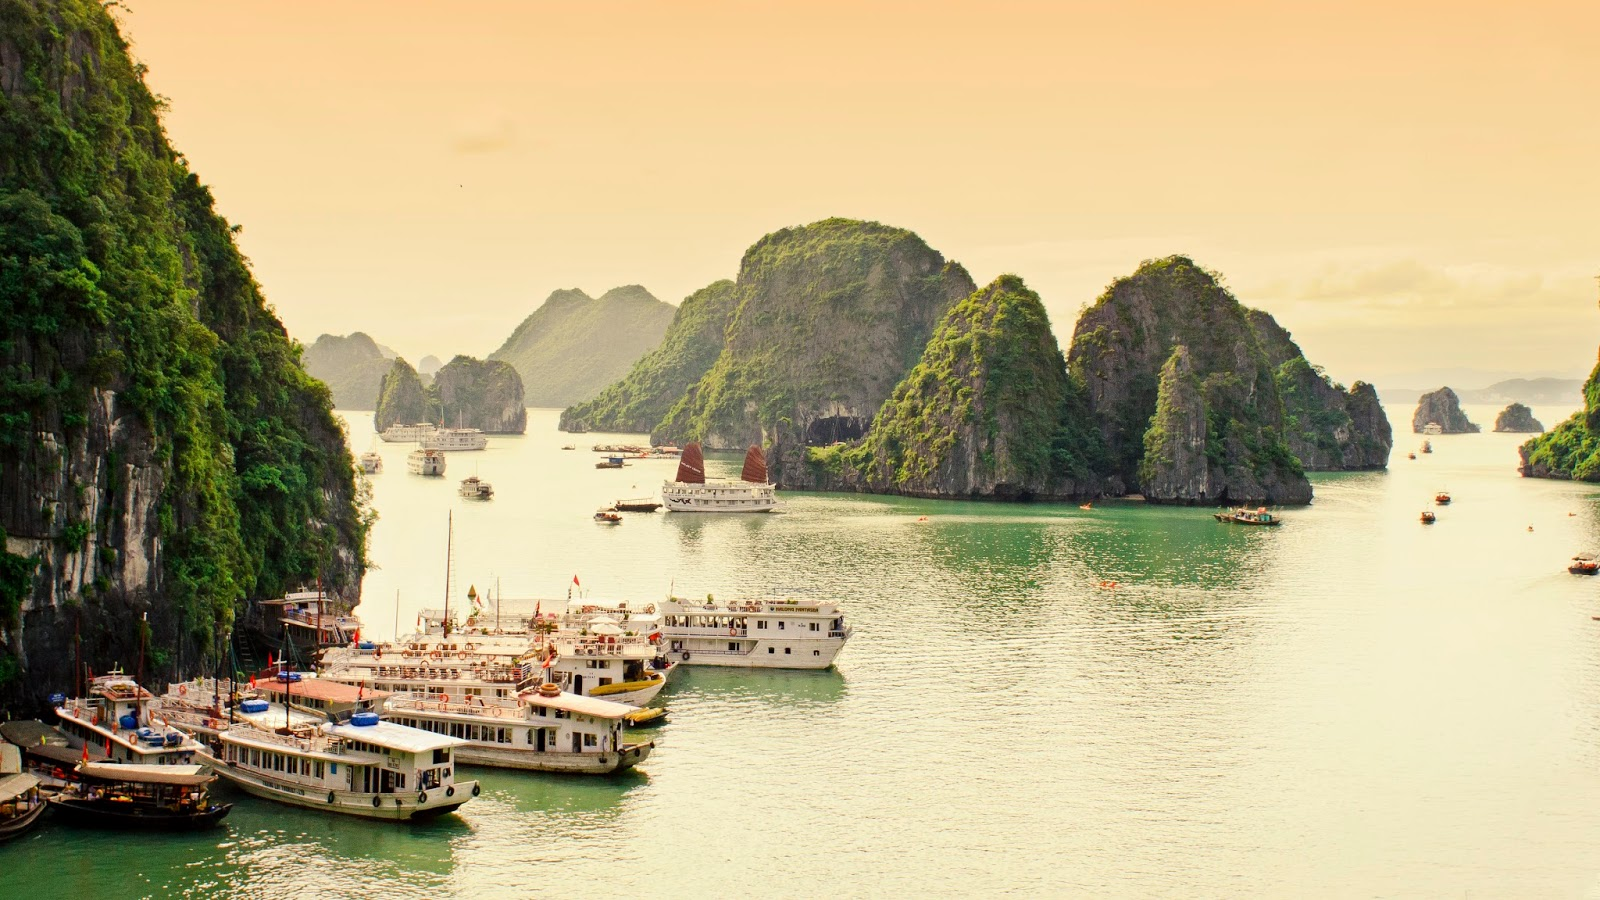 Halong Bay shutterstock #bing com - YouTube